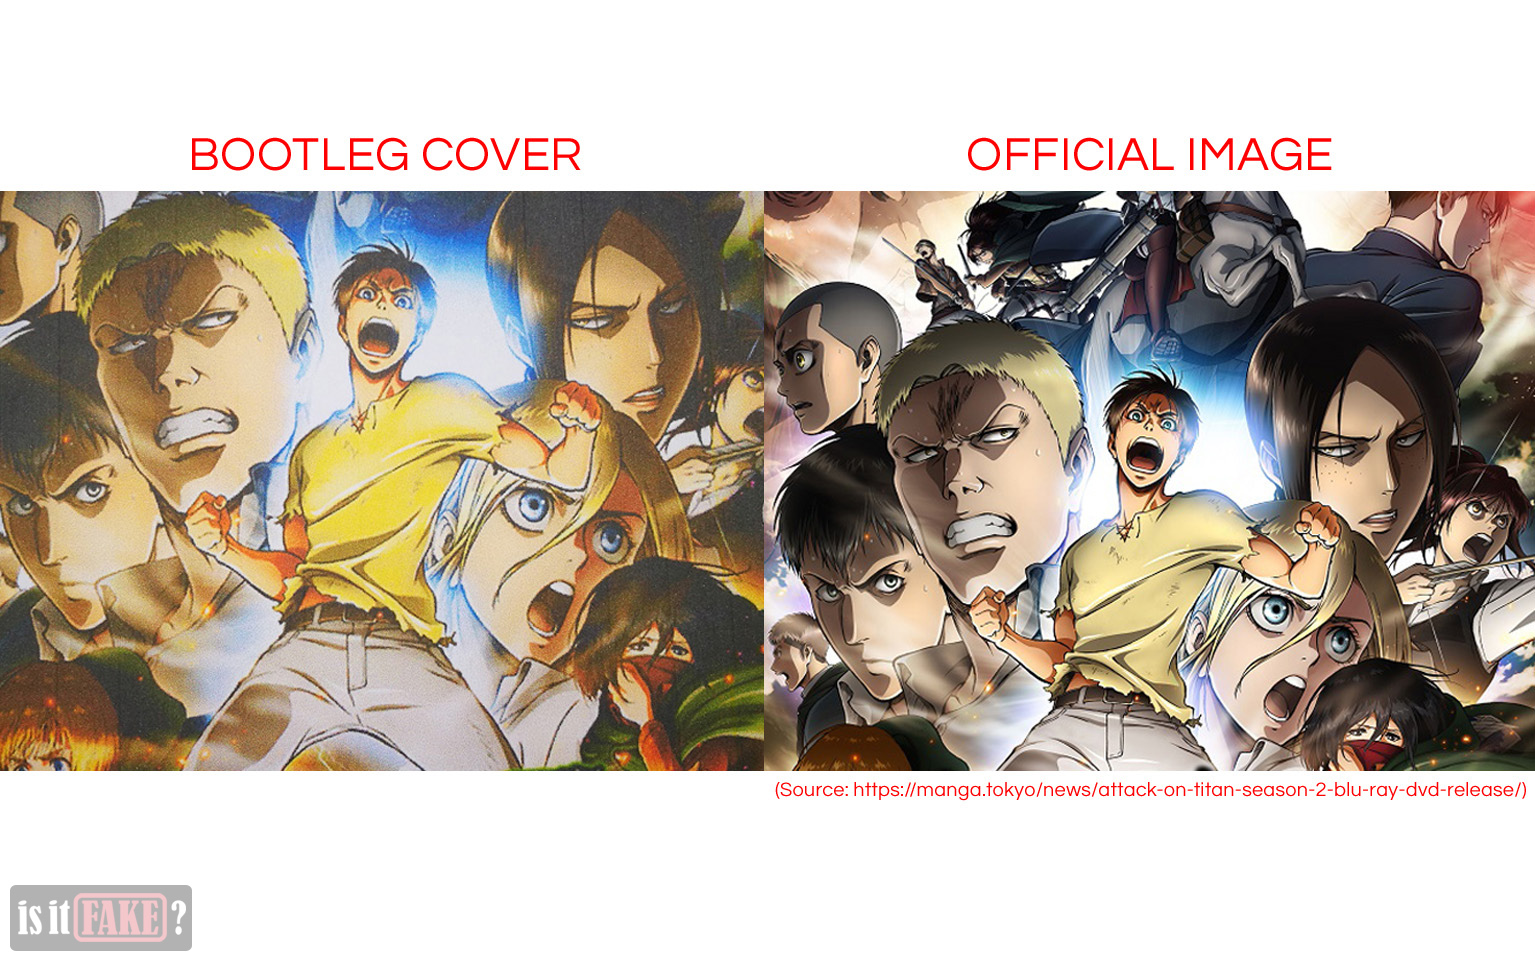 Bootleg cover vs. Official Image